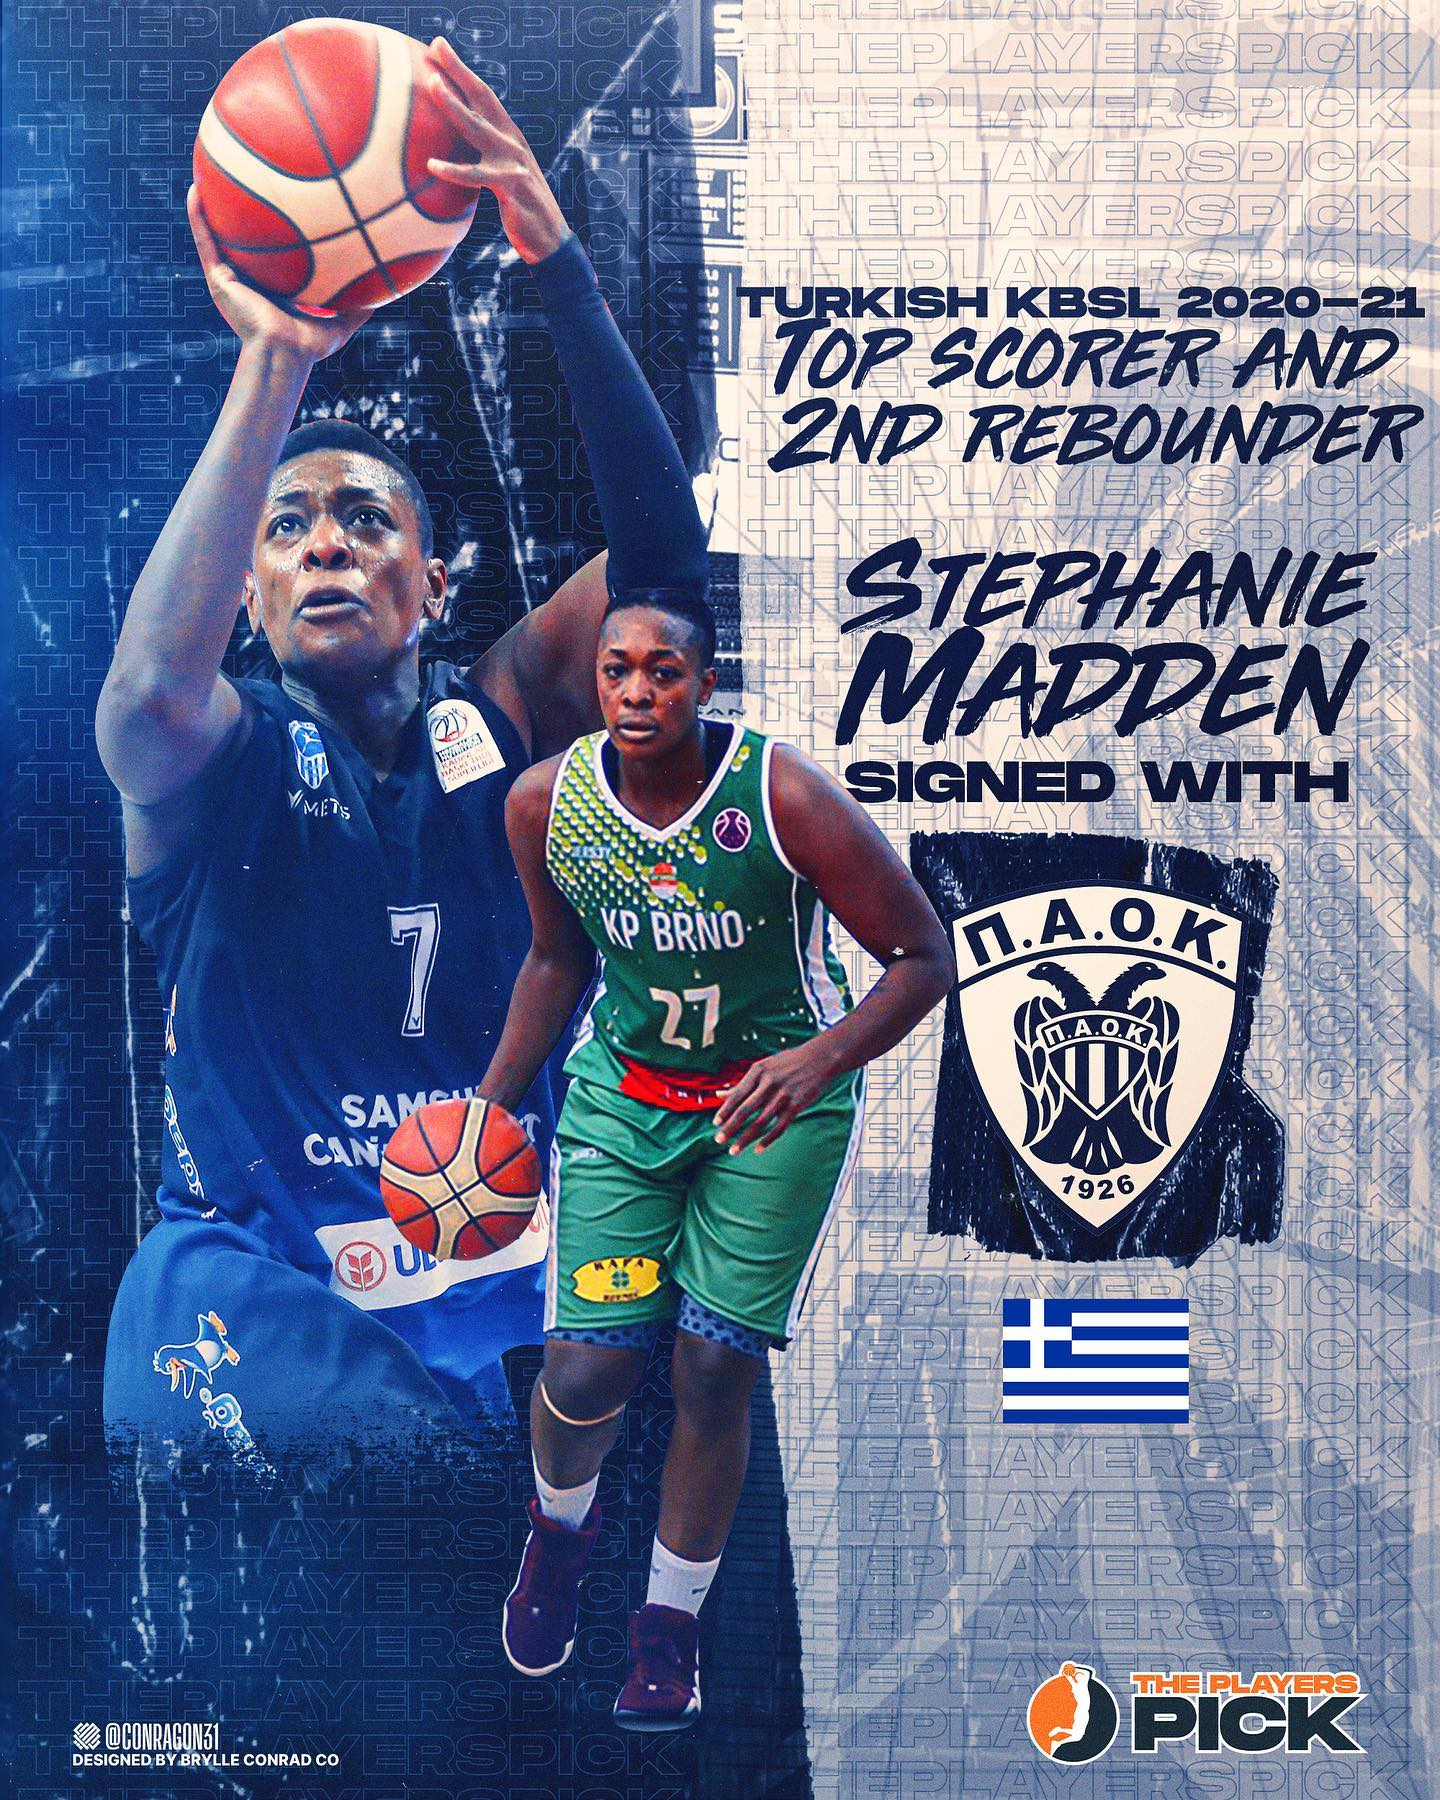 Stephanie Madden – Turkish KBSL Top Scorer signed with PAOK !